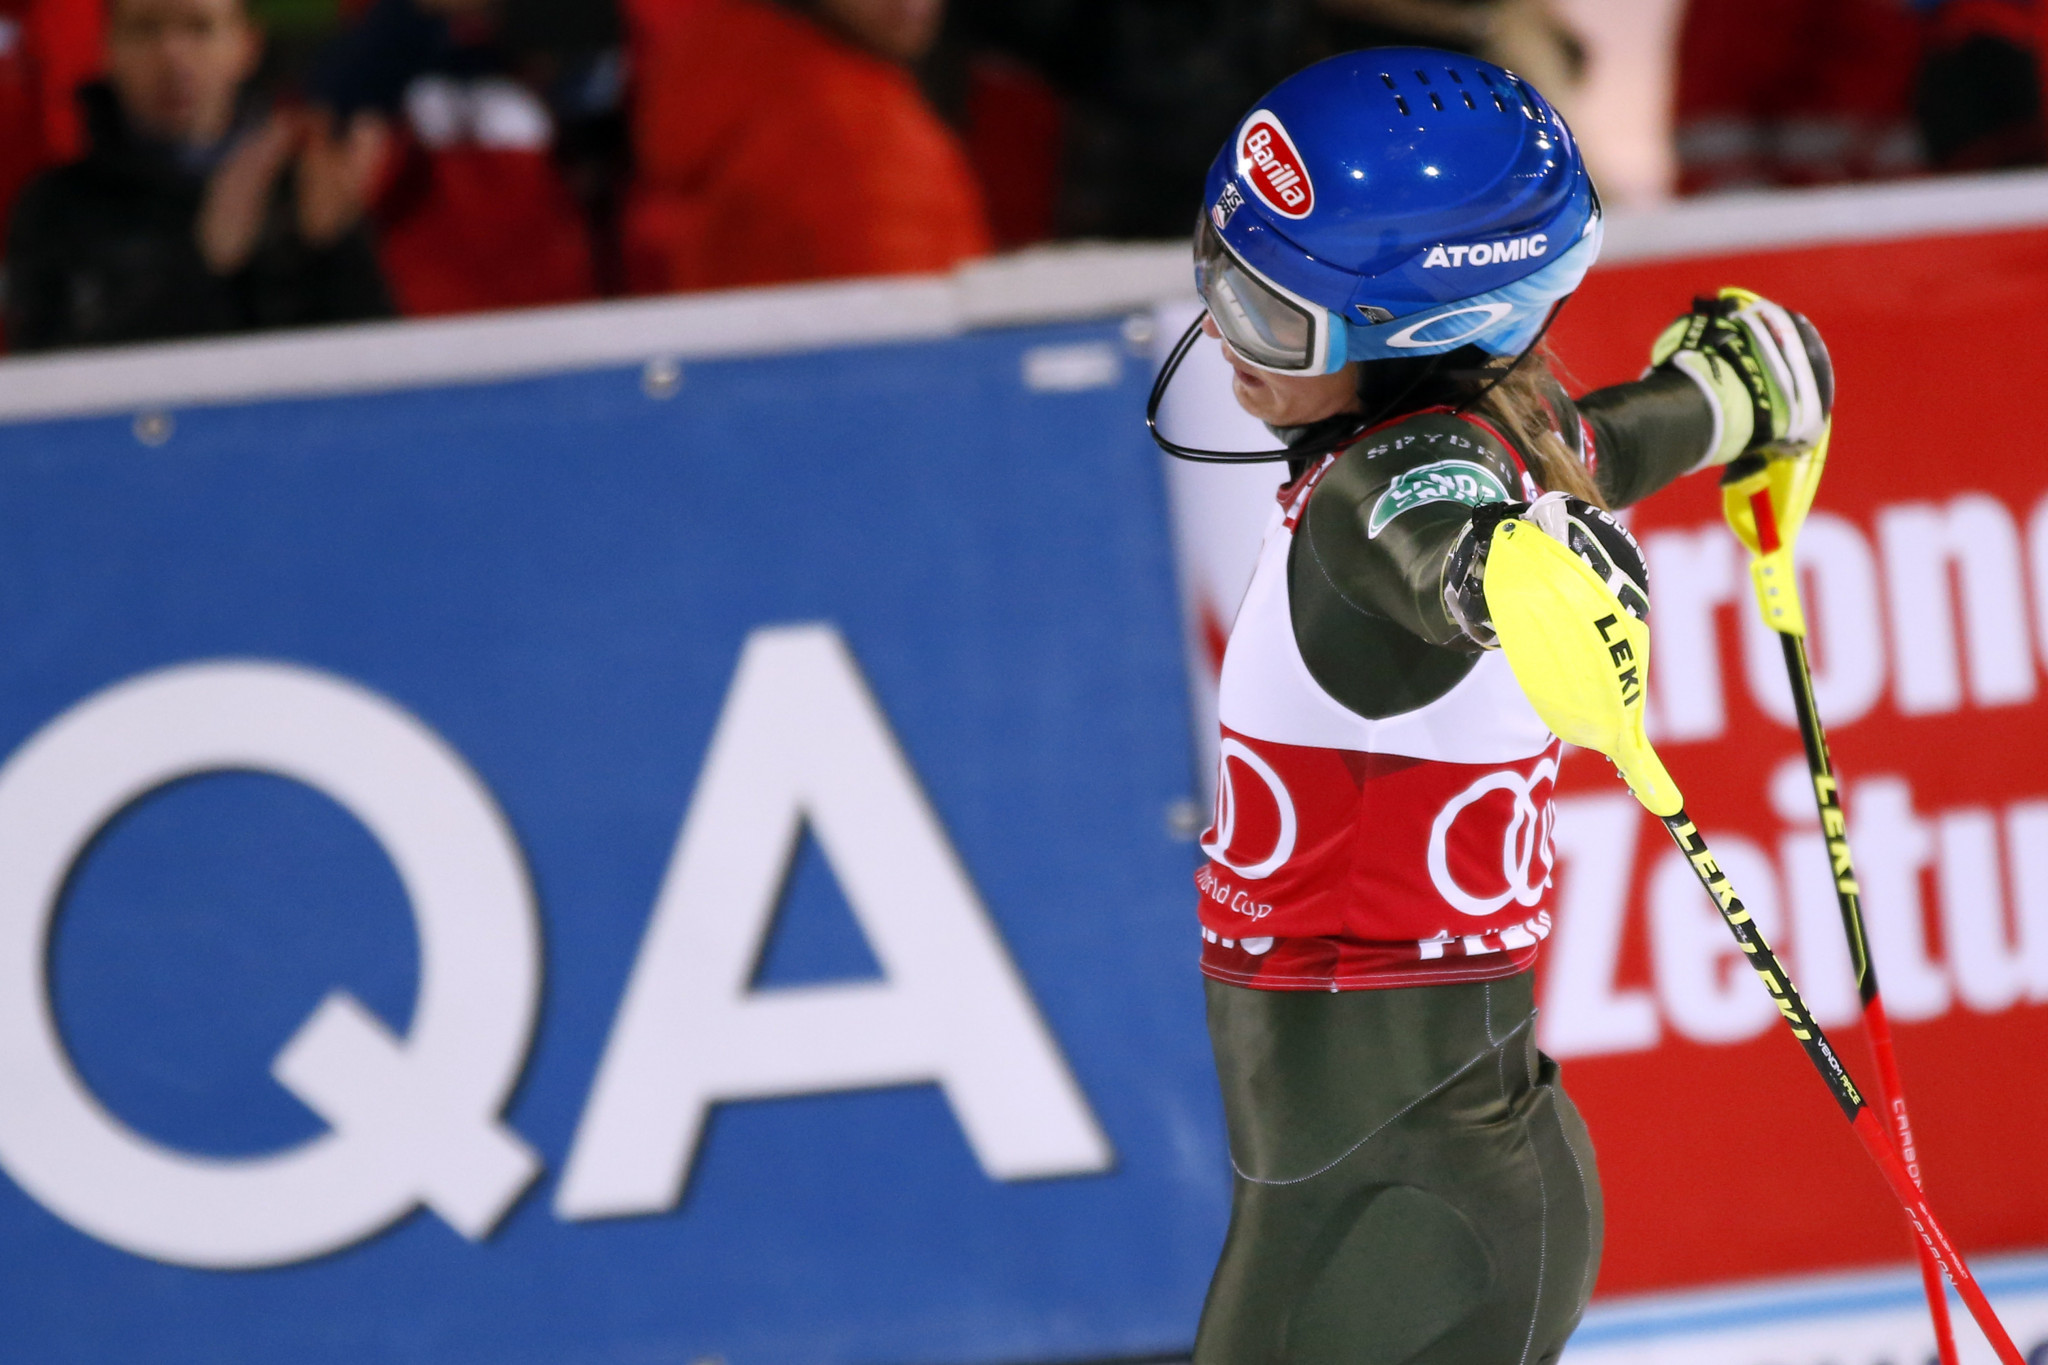 Mikaela Shiffrin will be desperate to improve on her third place in Austria ©Getty Images